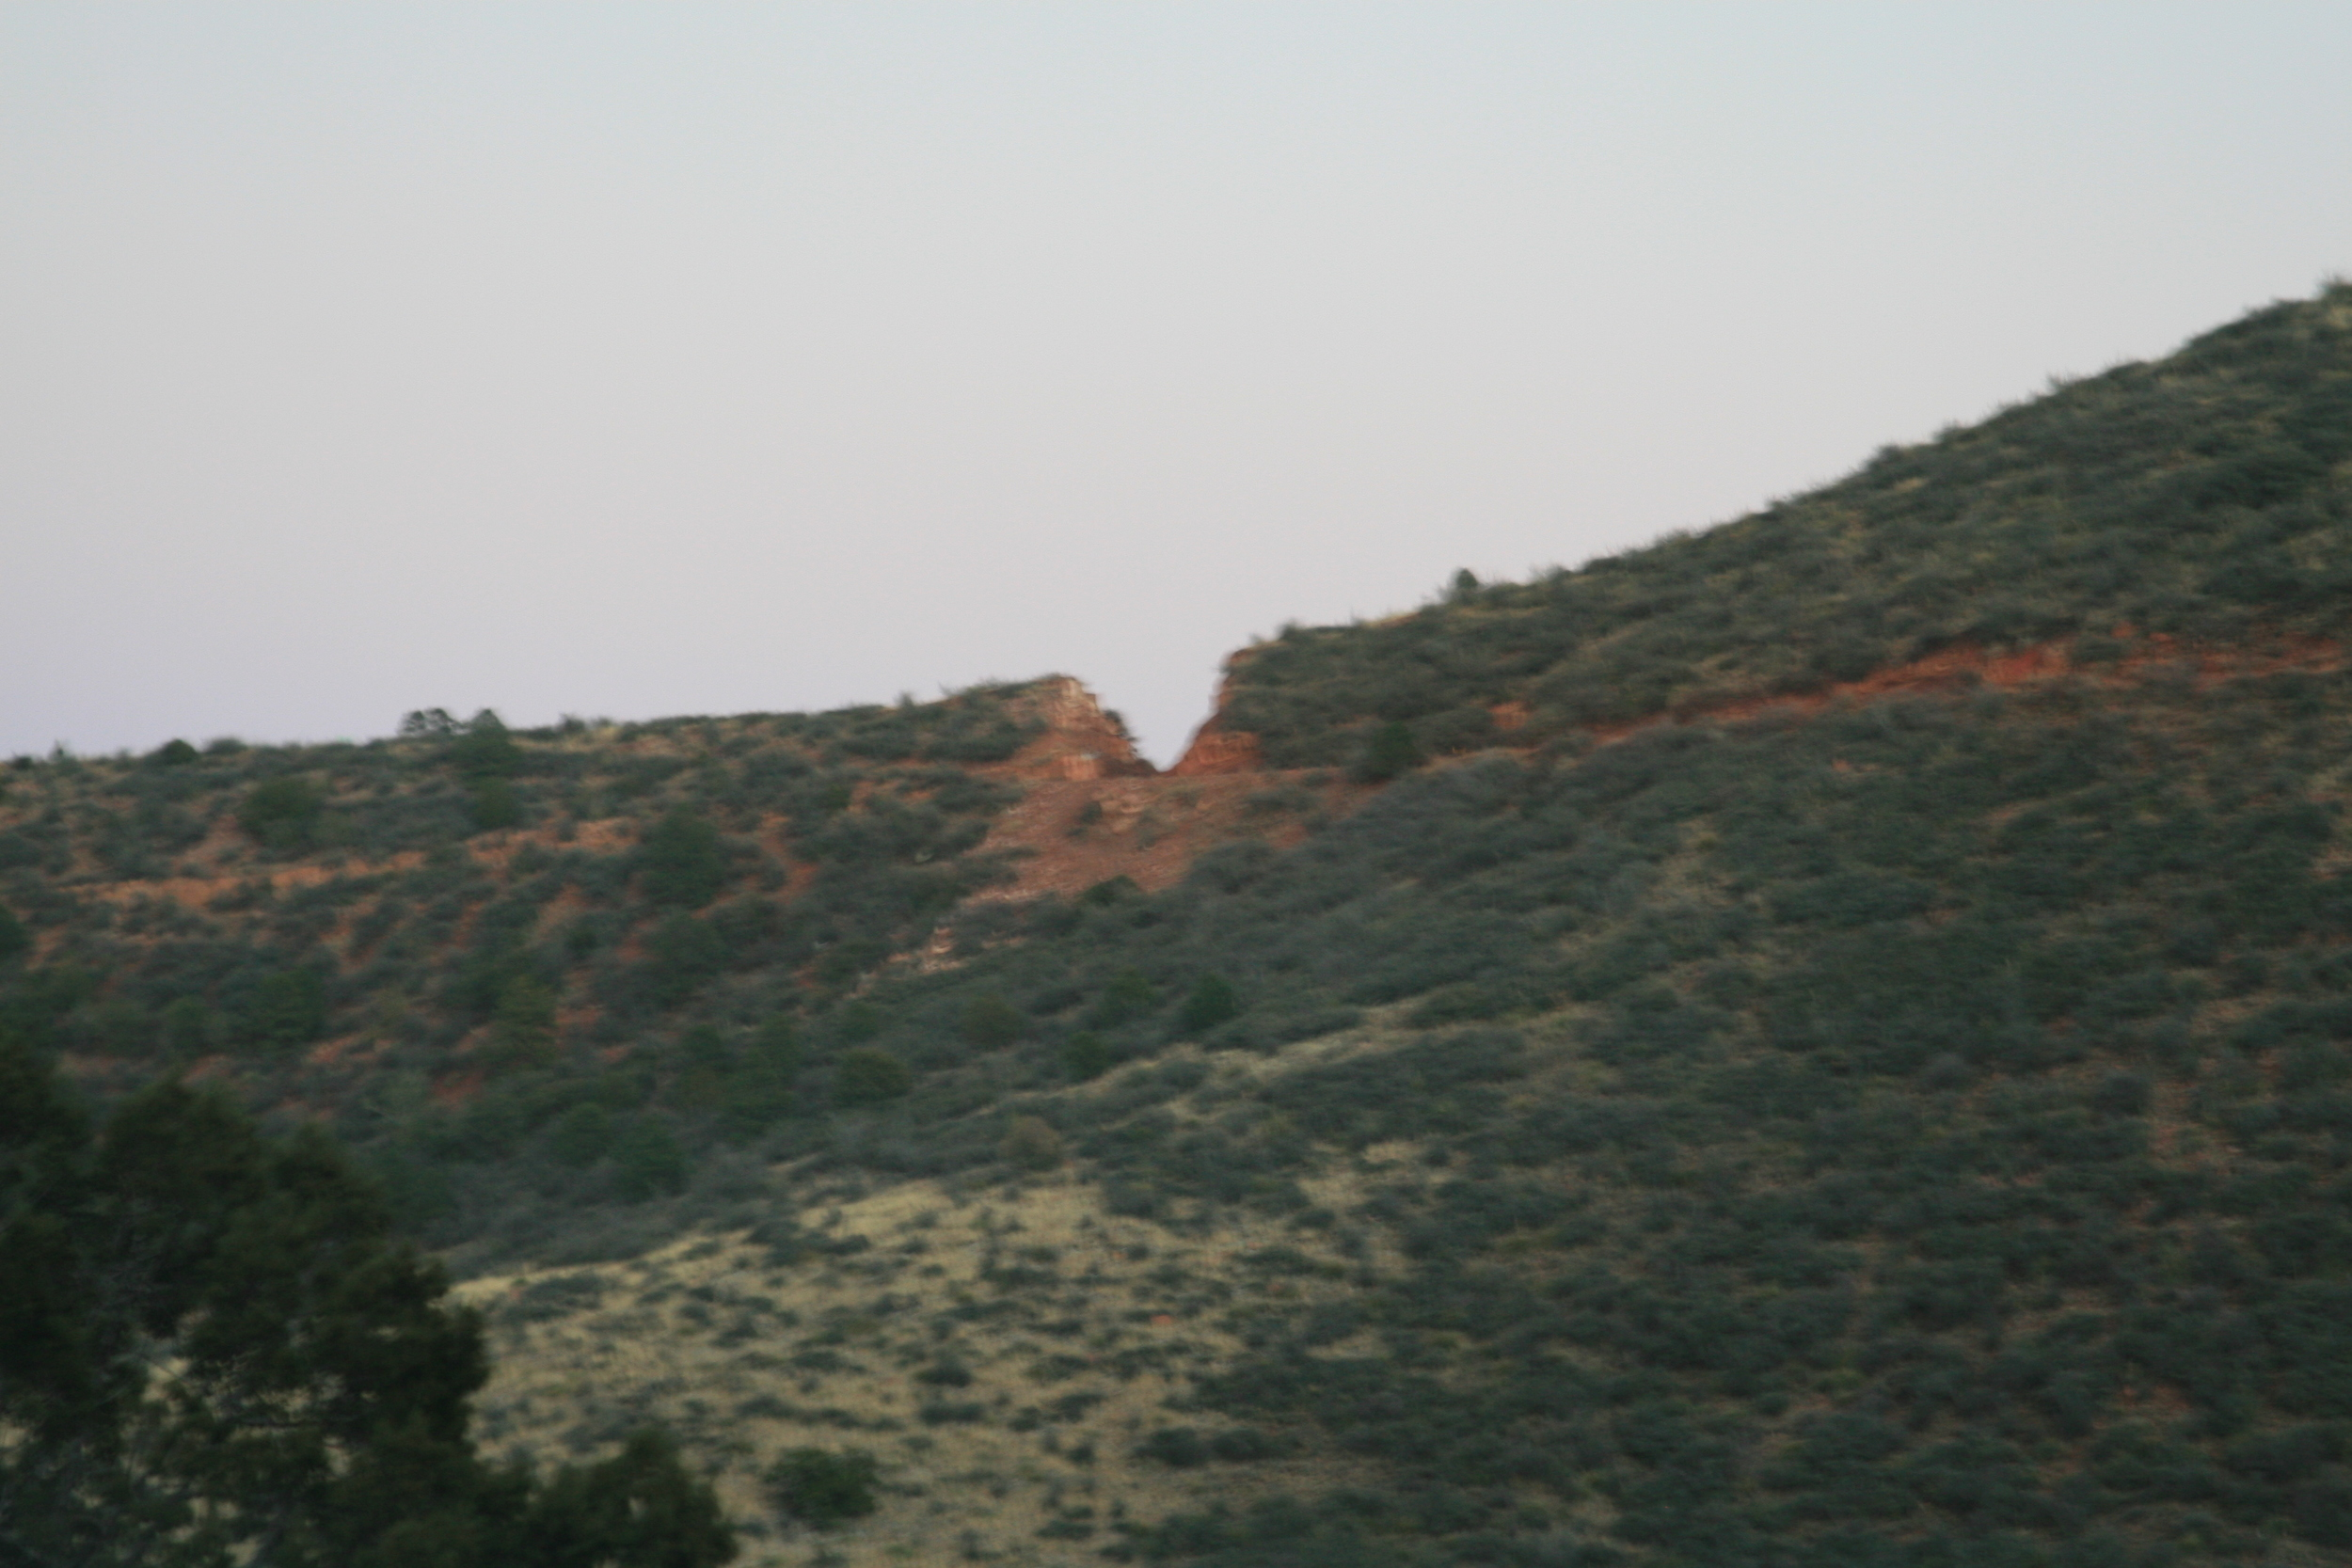 It was starting to get dark, and we spotted this notch a couple miles away.